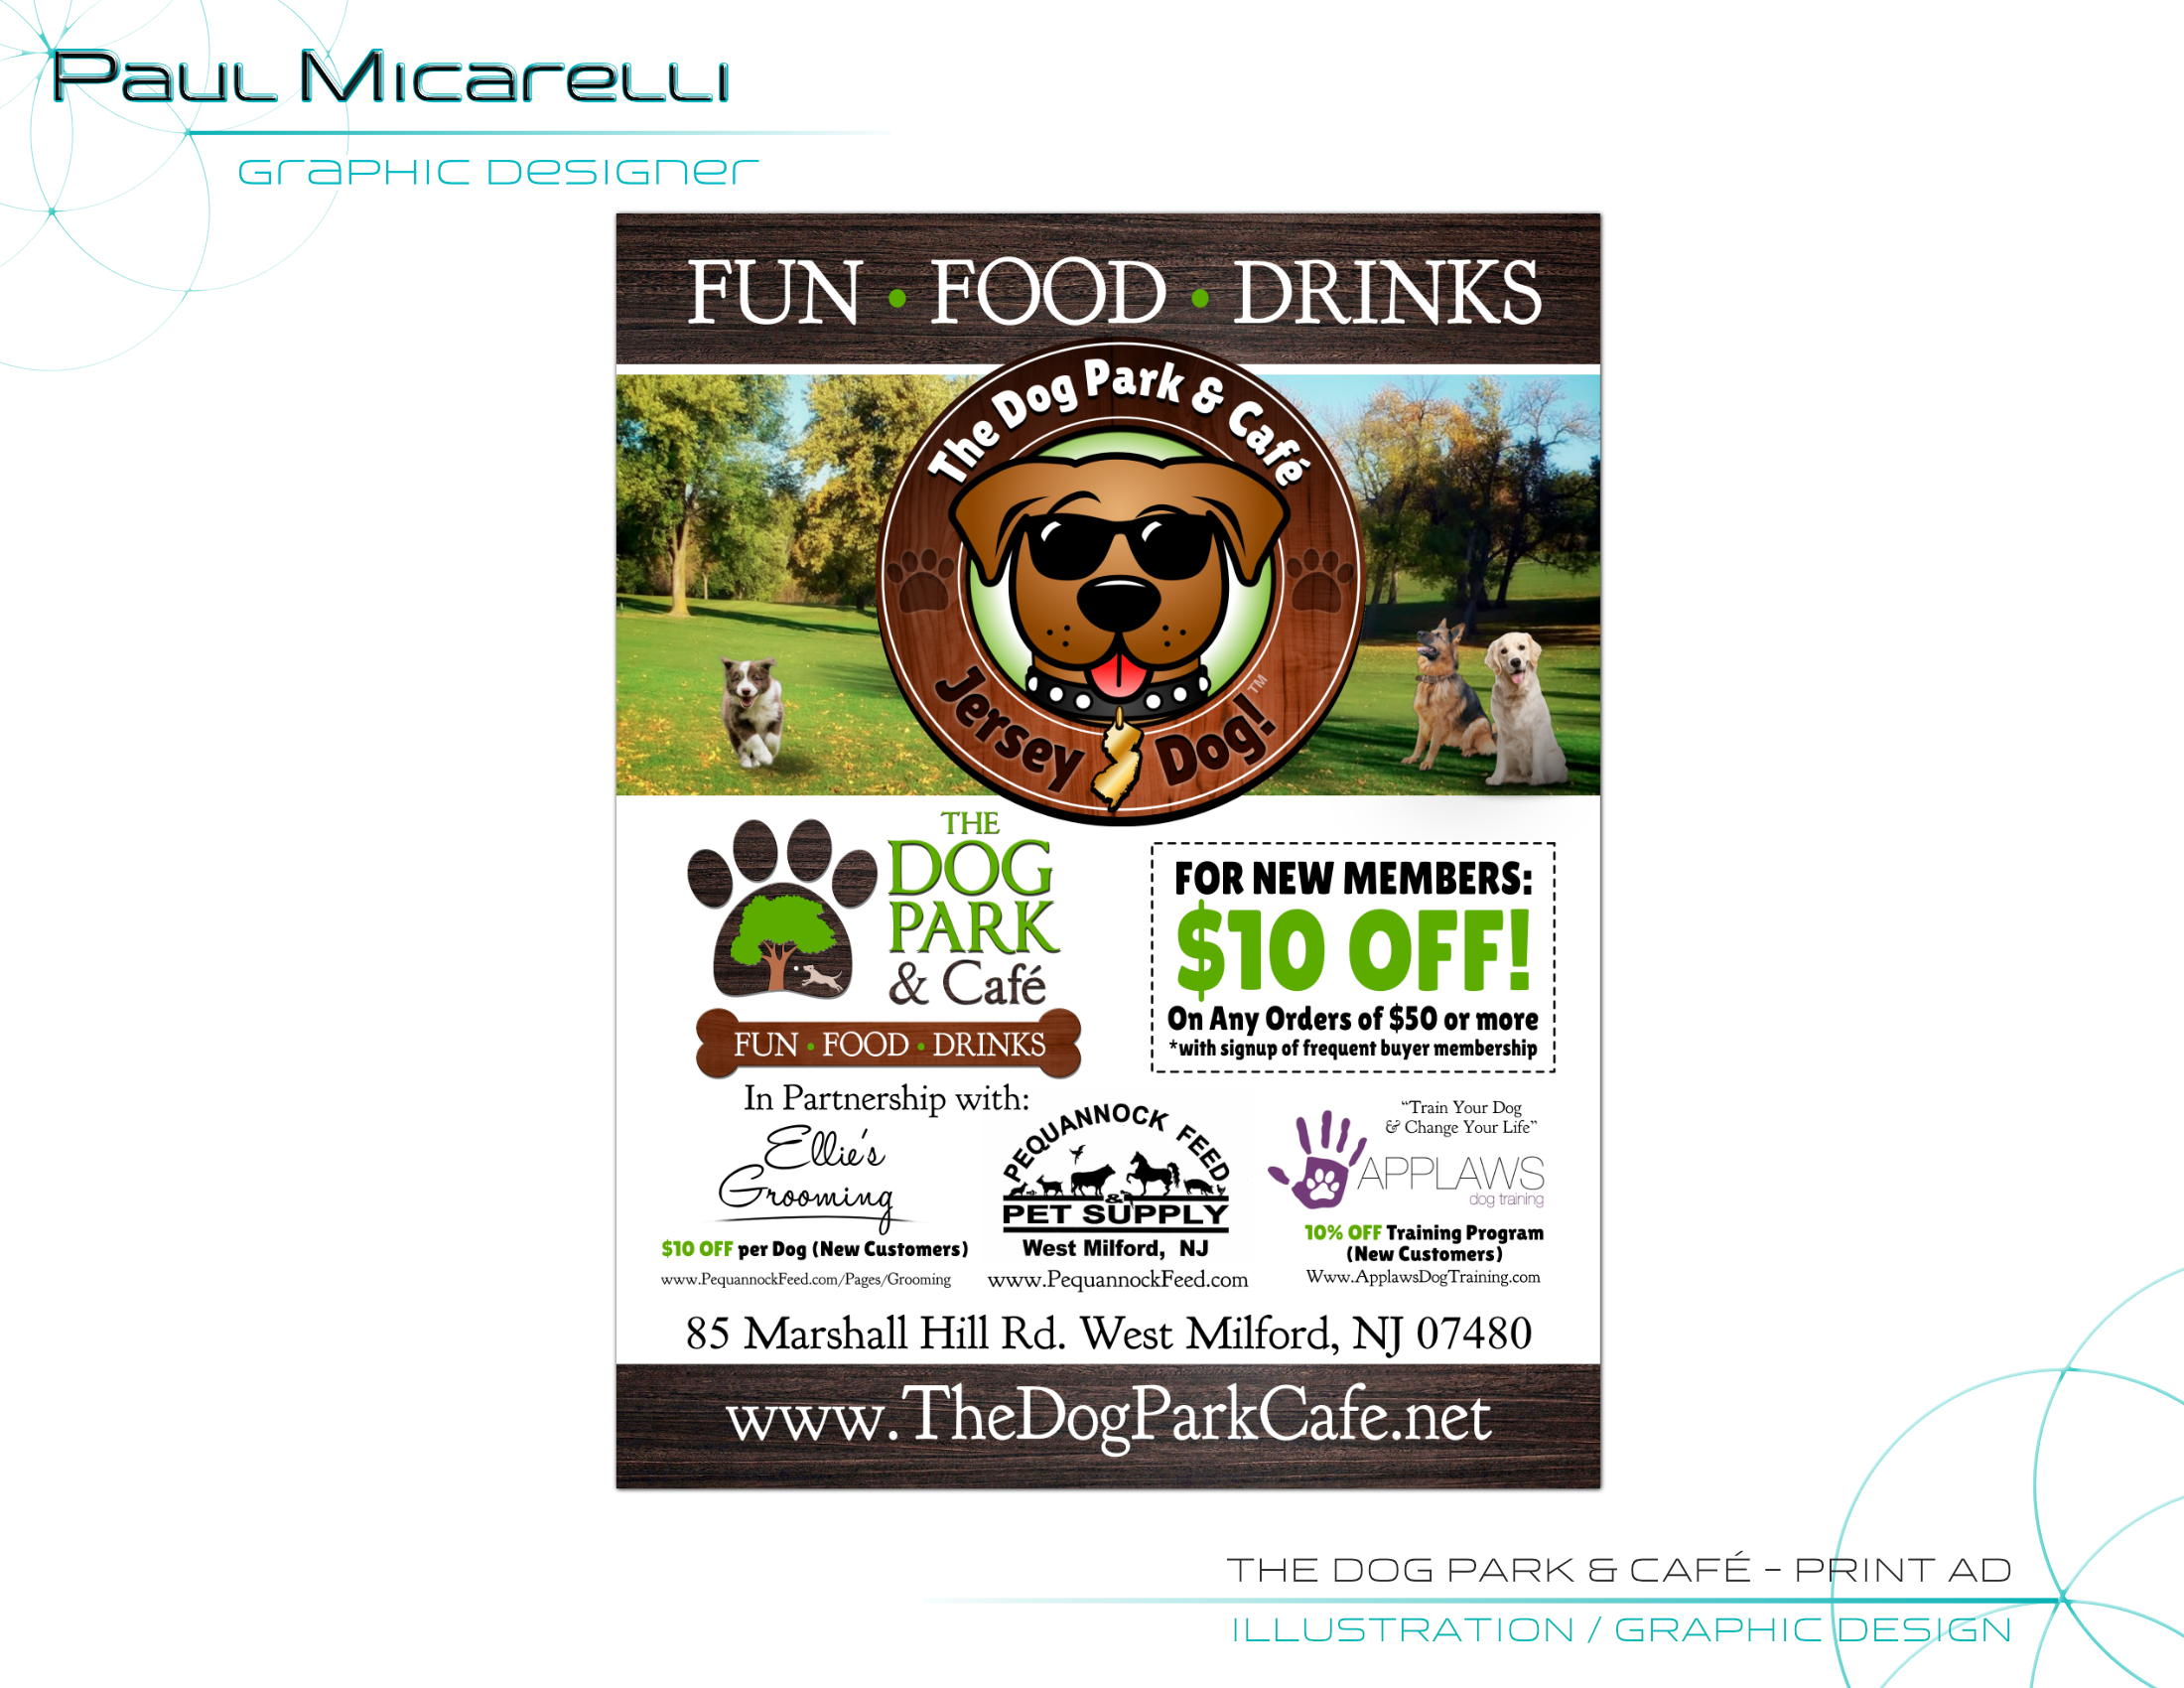 Paul-Micarelli-The Dog Park & Cafe-Print